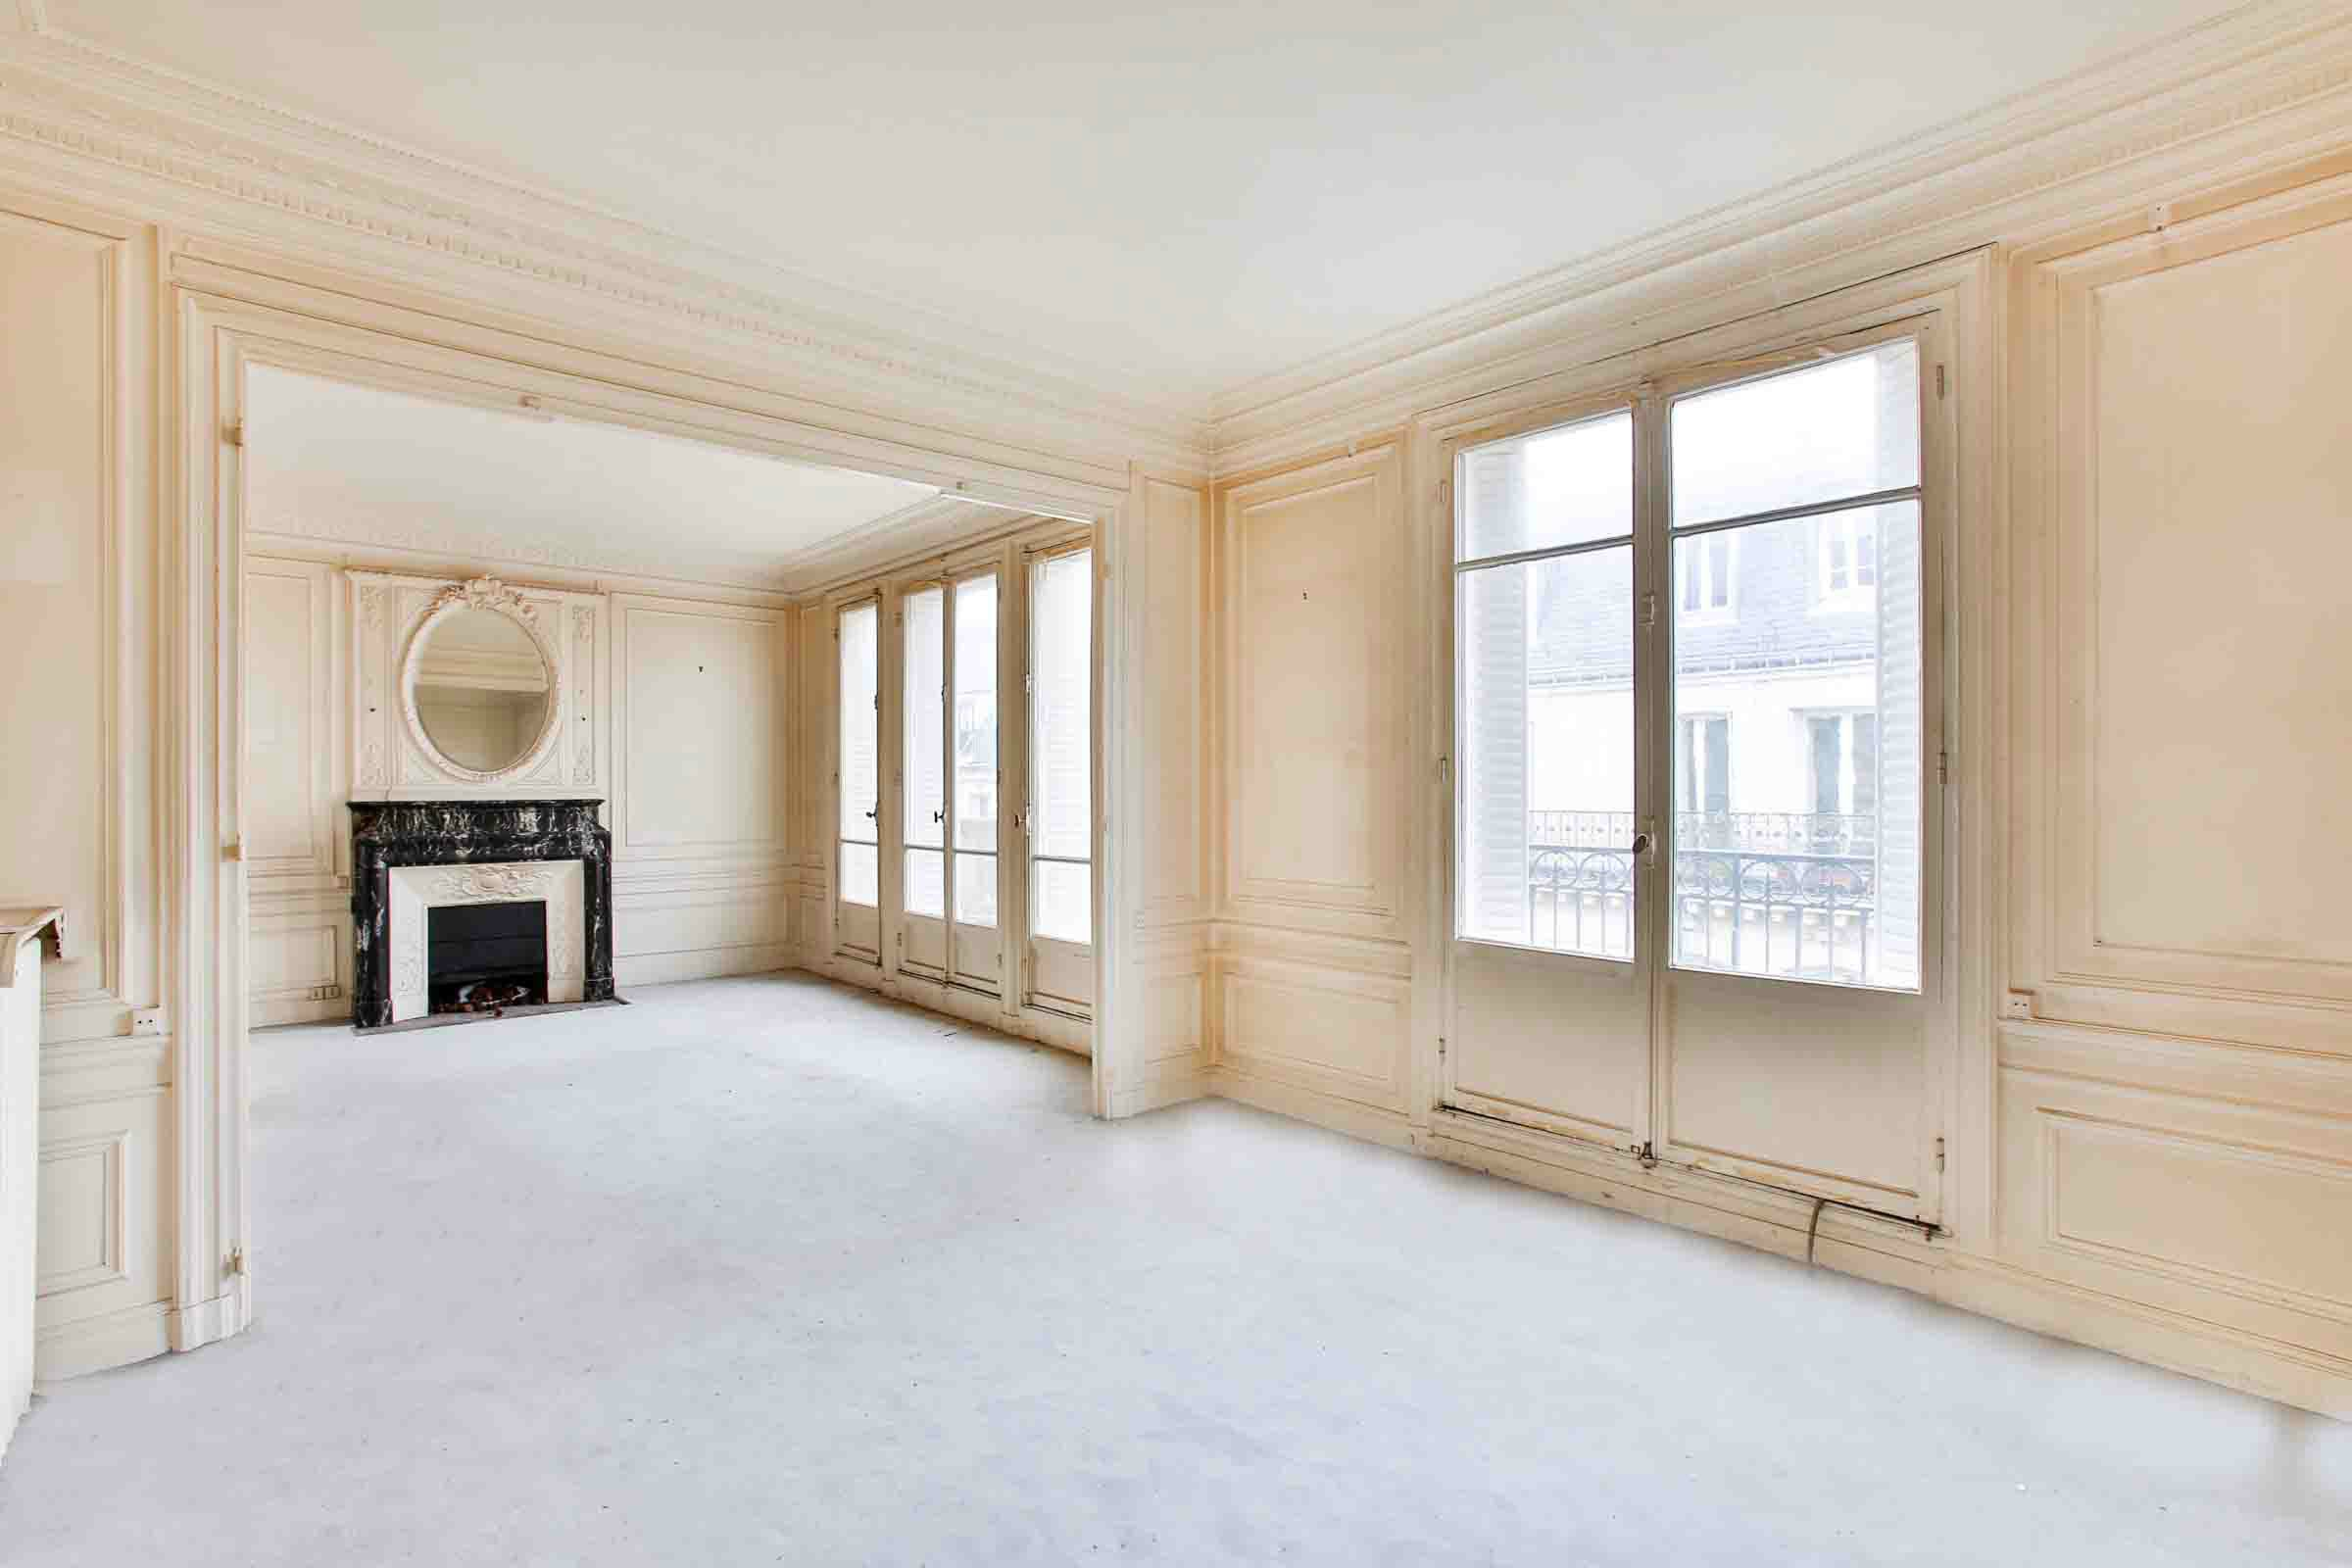 Property For Sale at Neuilly. Apartment. Pasteur school sector. Top floor.